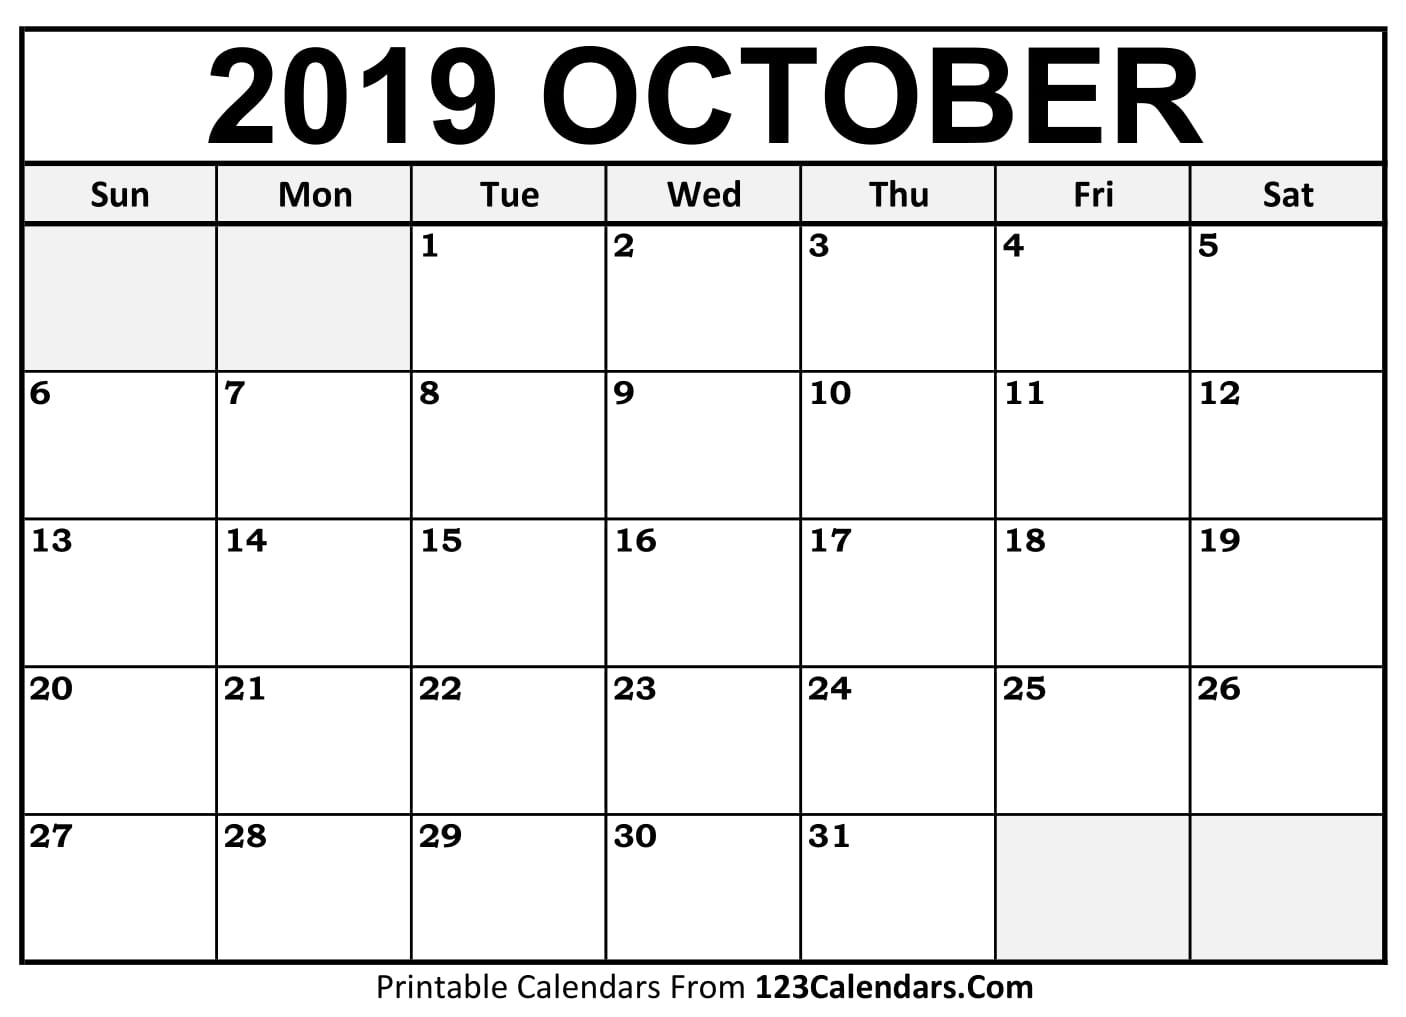 photograph about Free Printable October Calendars identified as Oct 2019 Printable Calendar